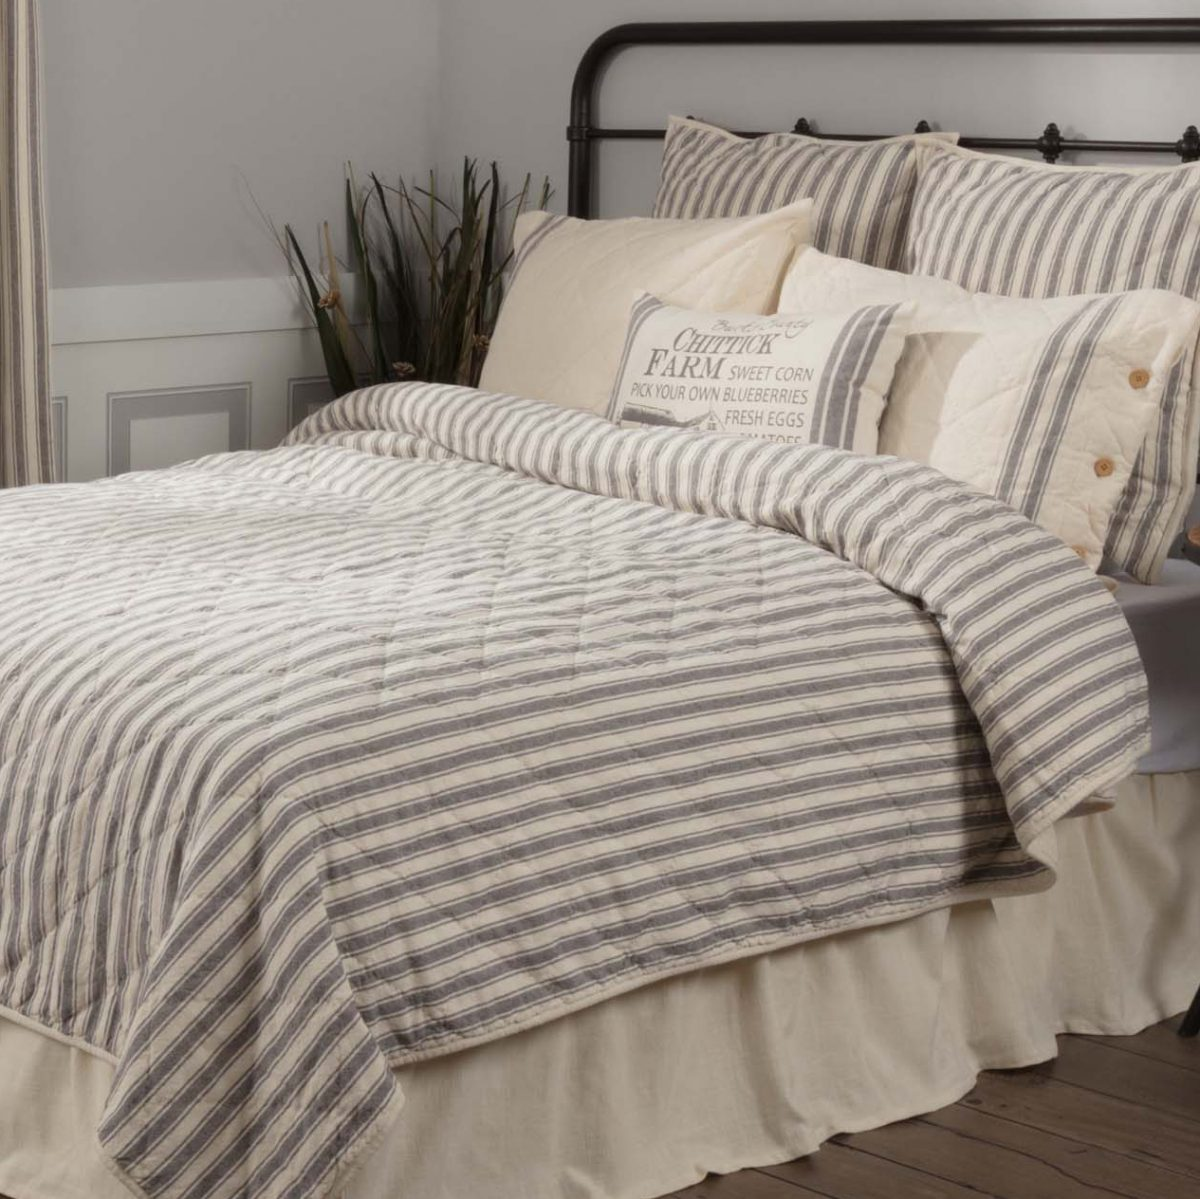 Market Place Gray Ticking Stripe Quilt Queen Piper